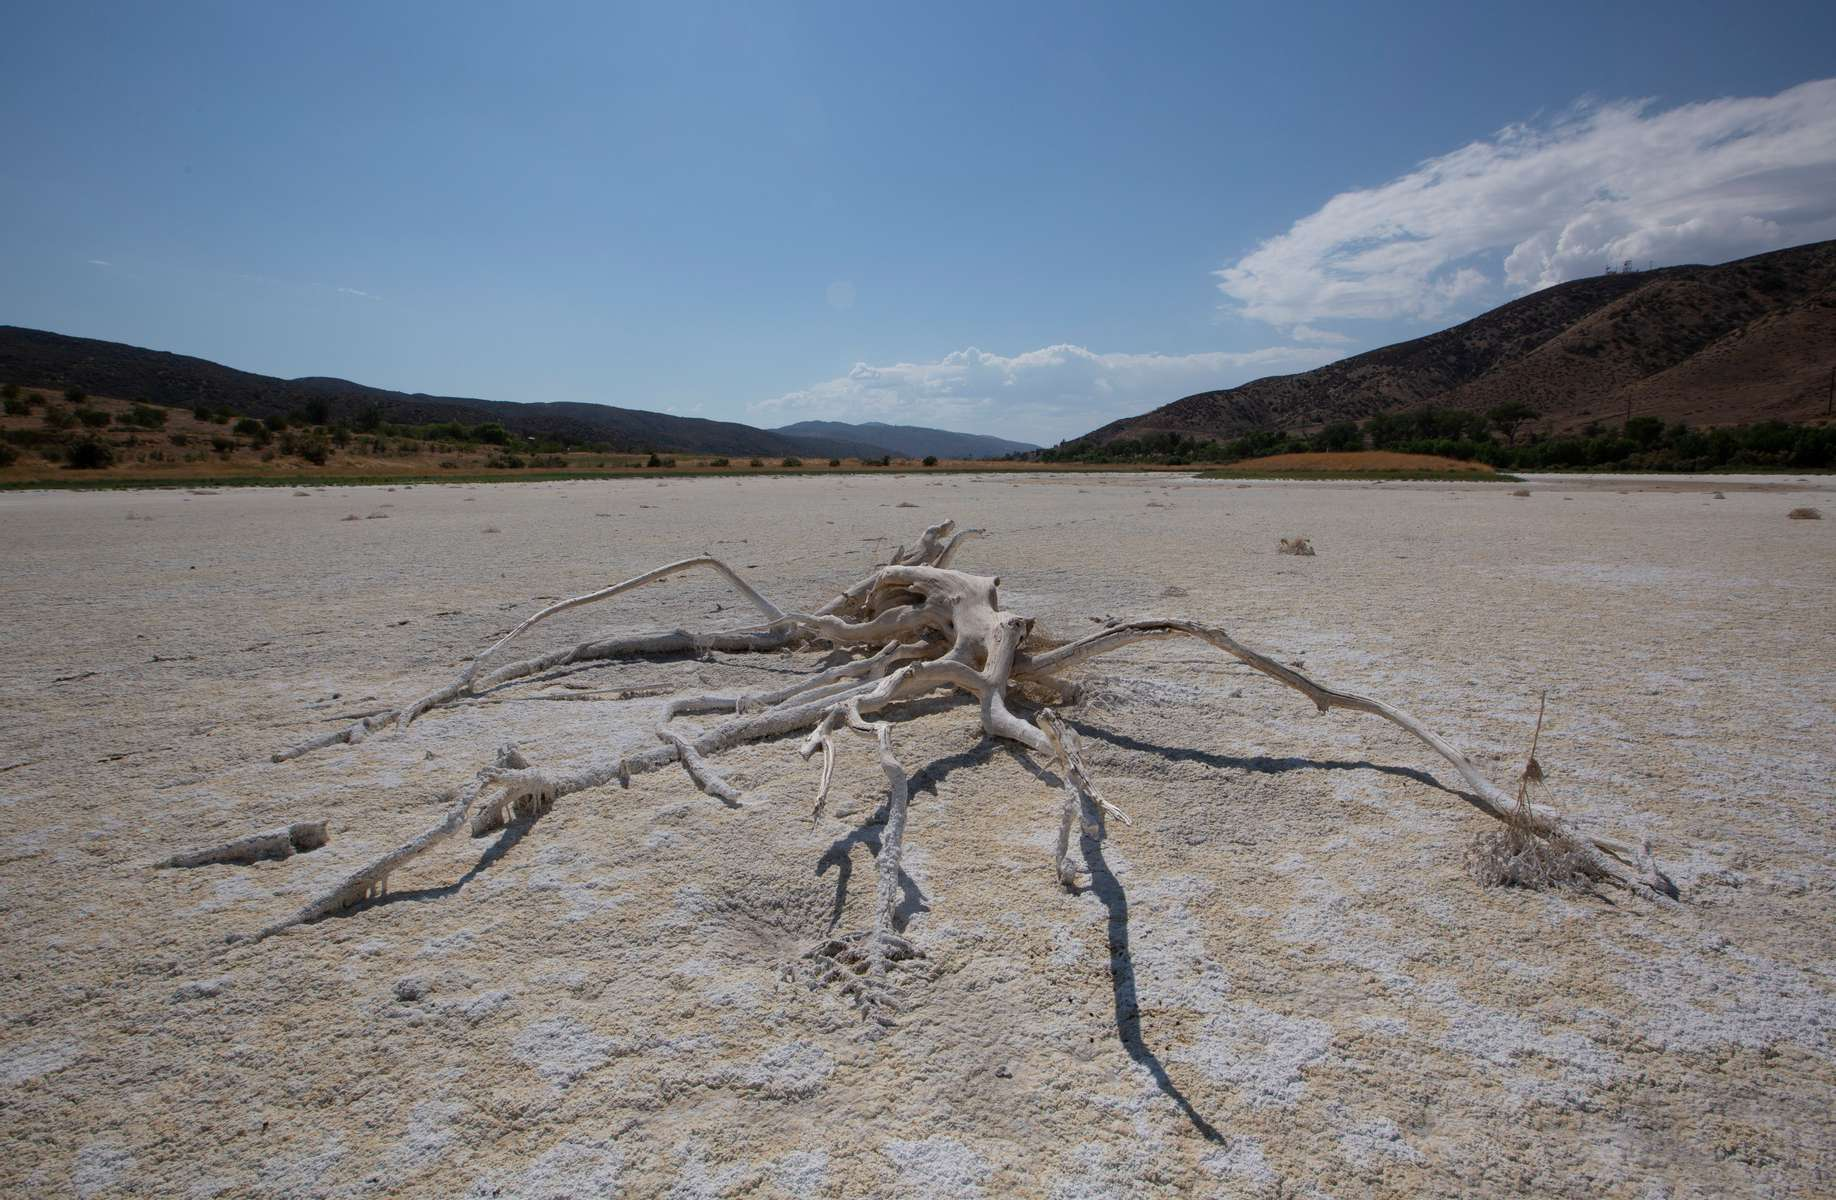 A view of Elizabeth Lake, that has been dried up for several years, as the region experiences extreme heat and drought conditions, in Elizabeth Lake, an unincorporated community in Los Angeles County, California, U.S., June 18, 2021.